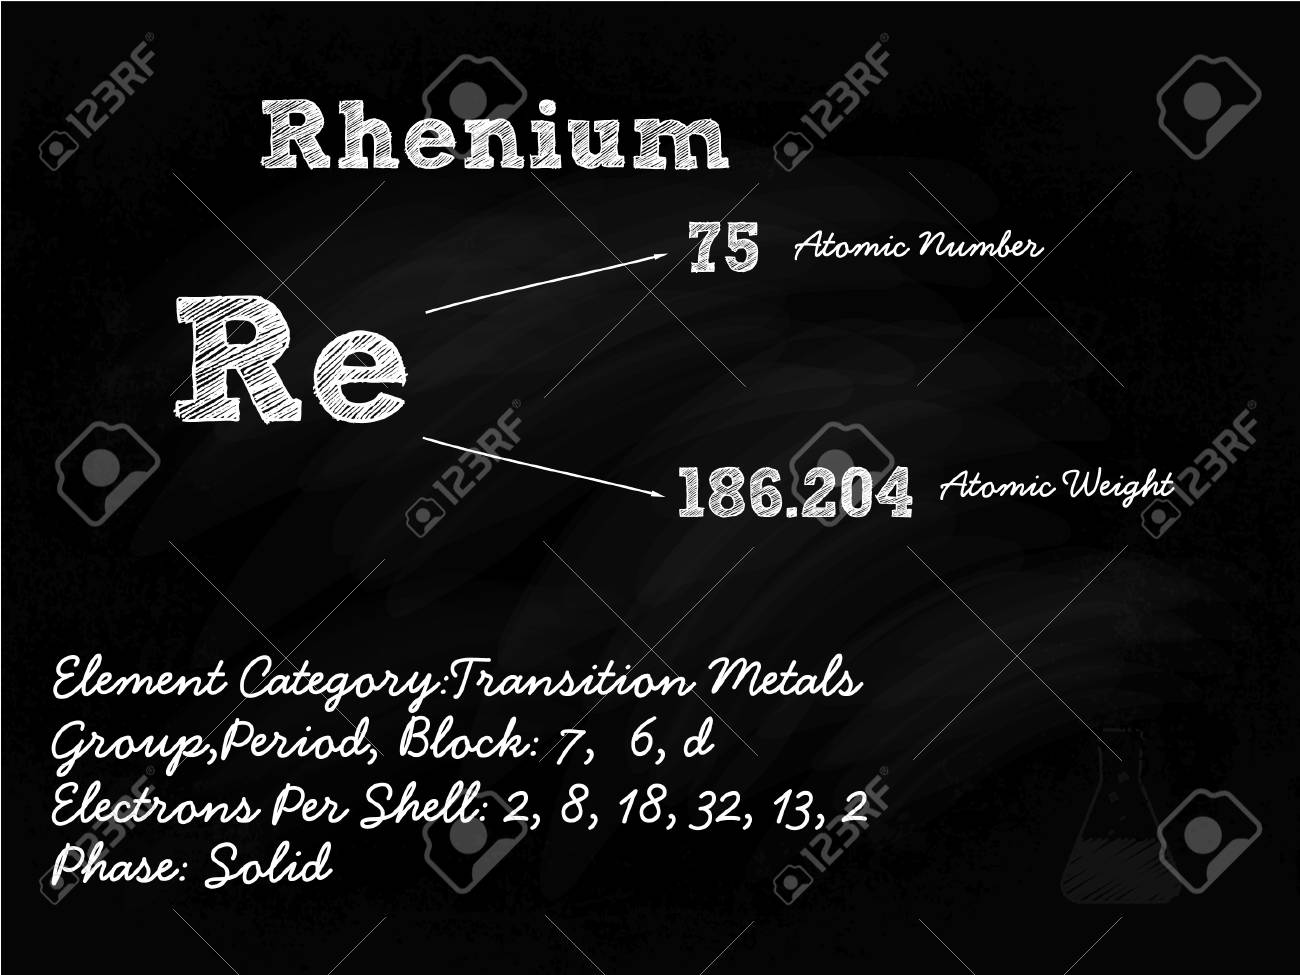 Rhenium Symbol Illustration On Blackboard With Chalk Stock Vector - 22205226